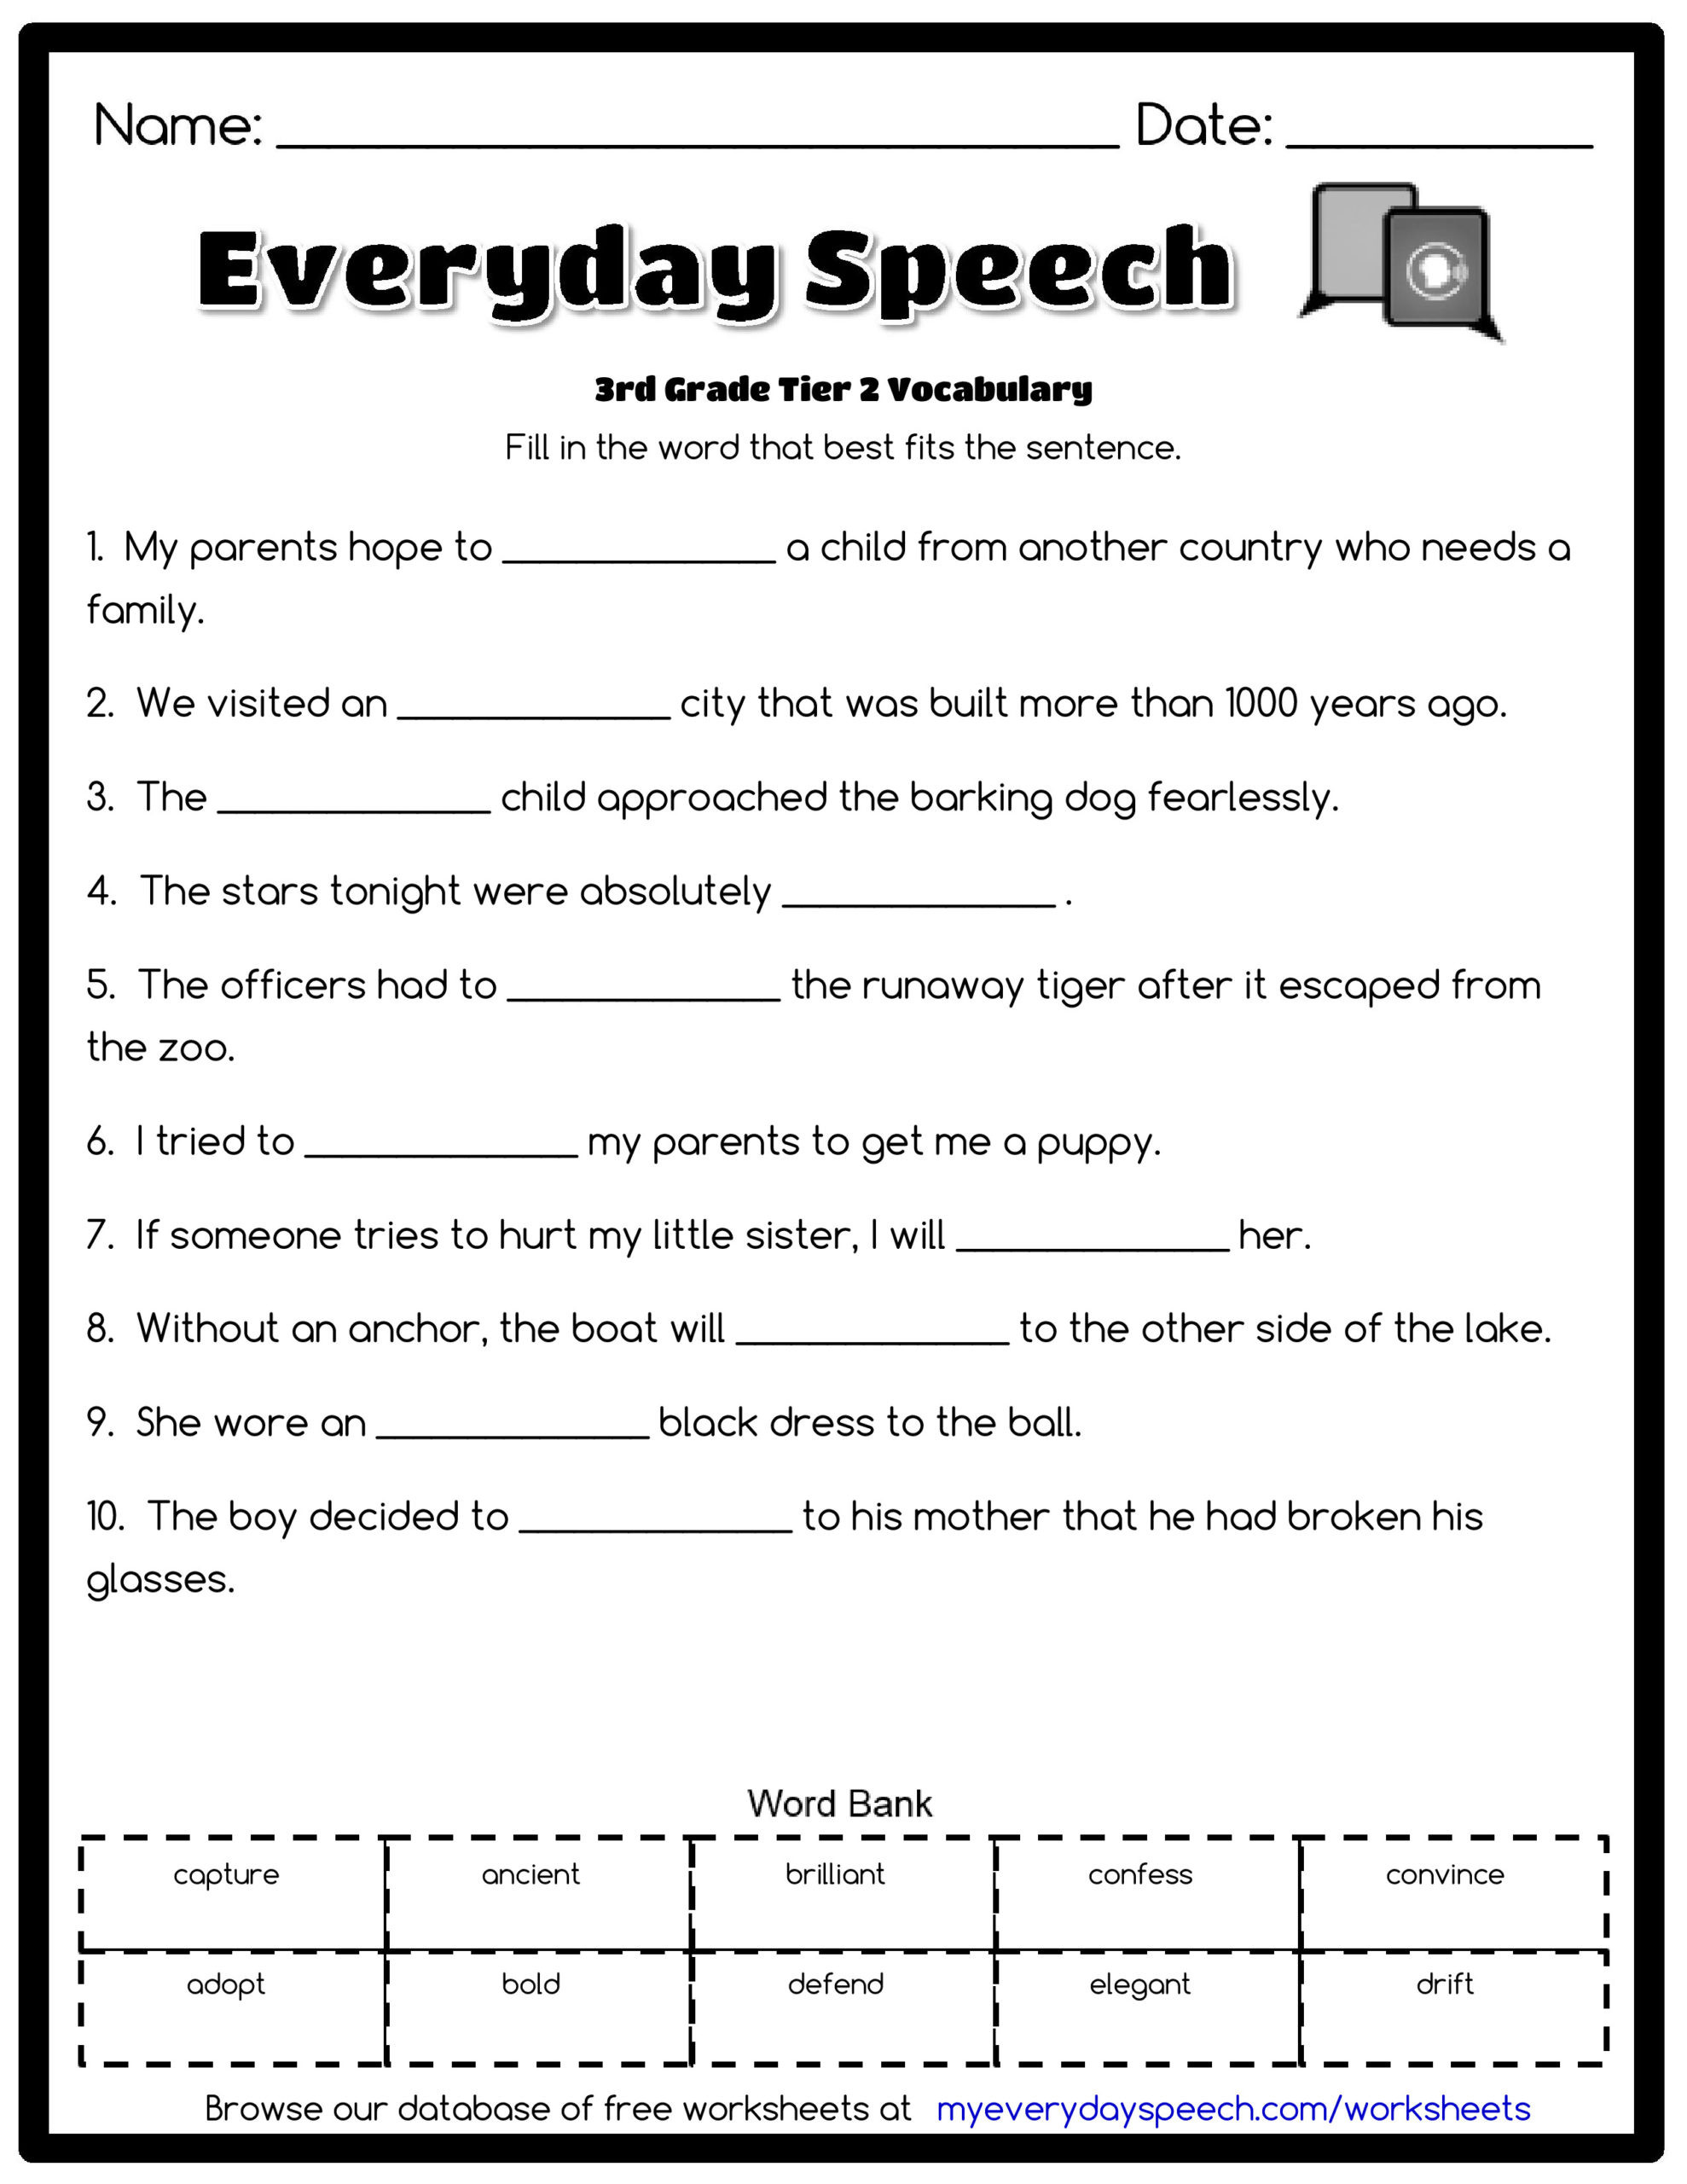 8th Grade Vocabulary Worksheets 3rd Grade Vocabulary Worksheets for Free 4th Basic Calculus